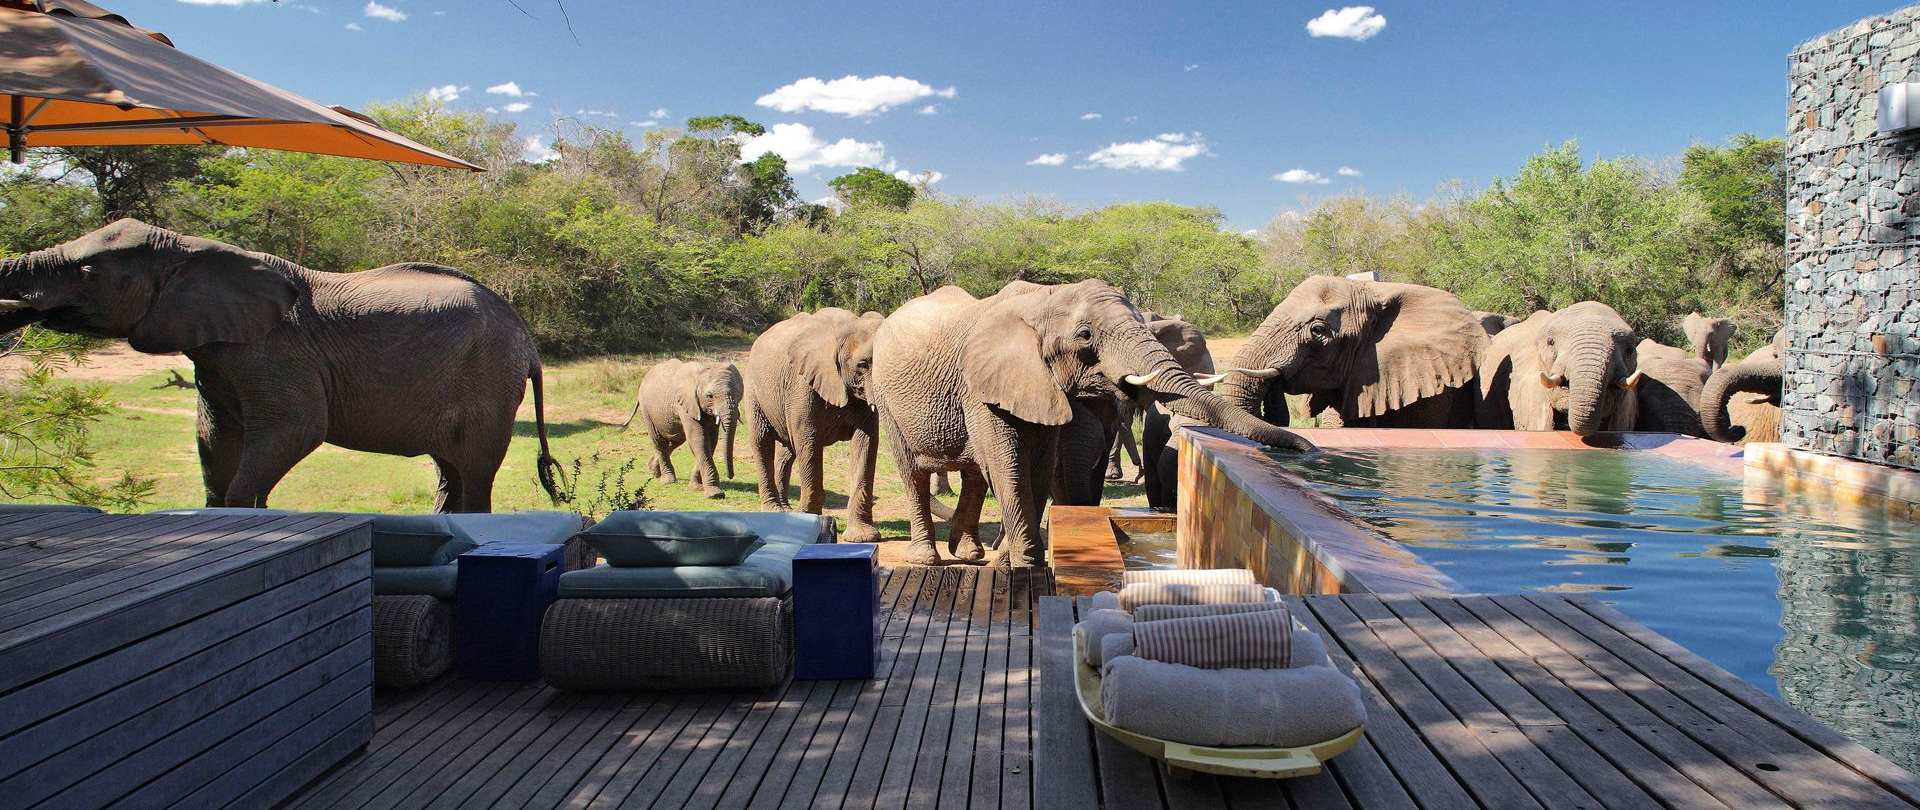 10 Top-Rated Luxury Safari Lodges in South Africa | PlanetWare